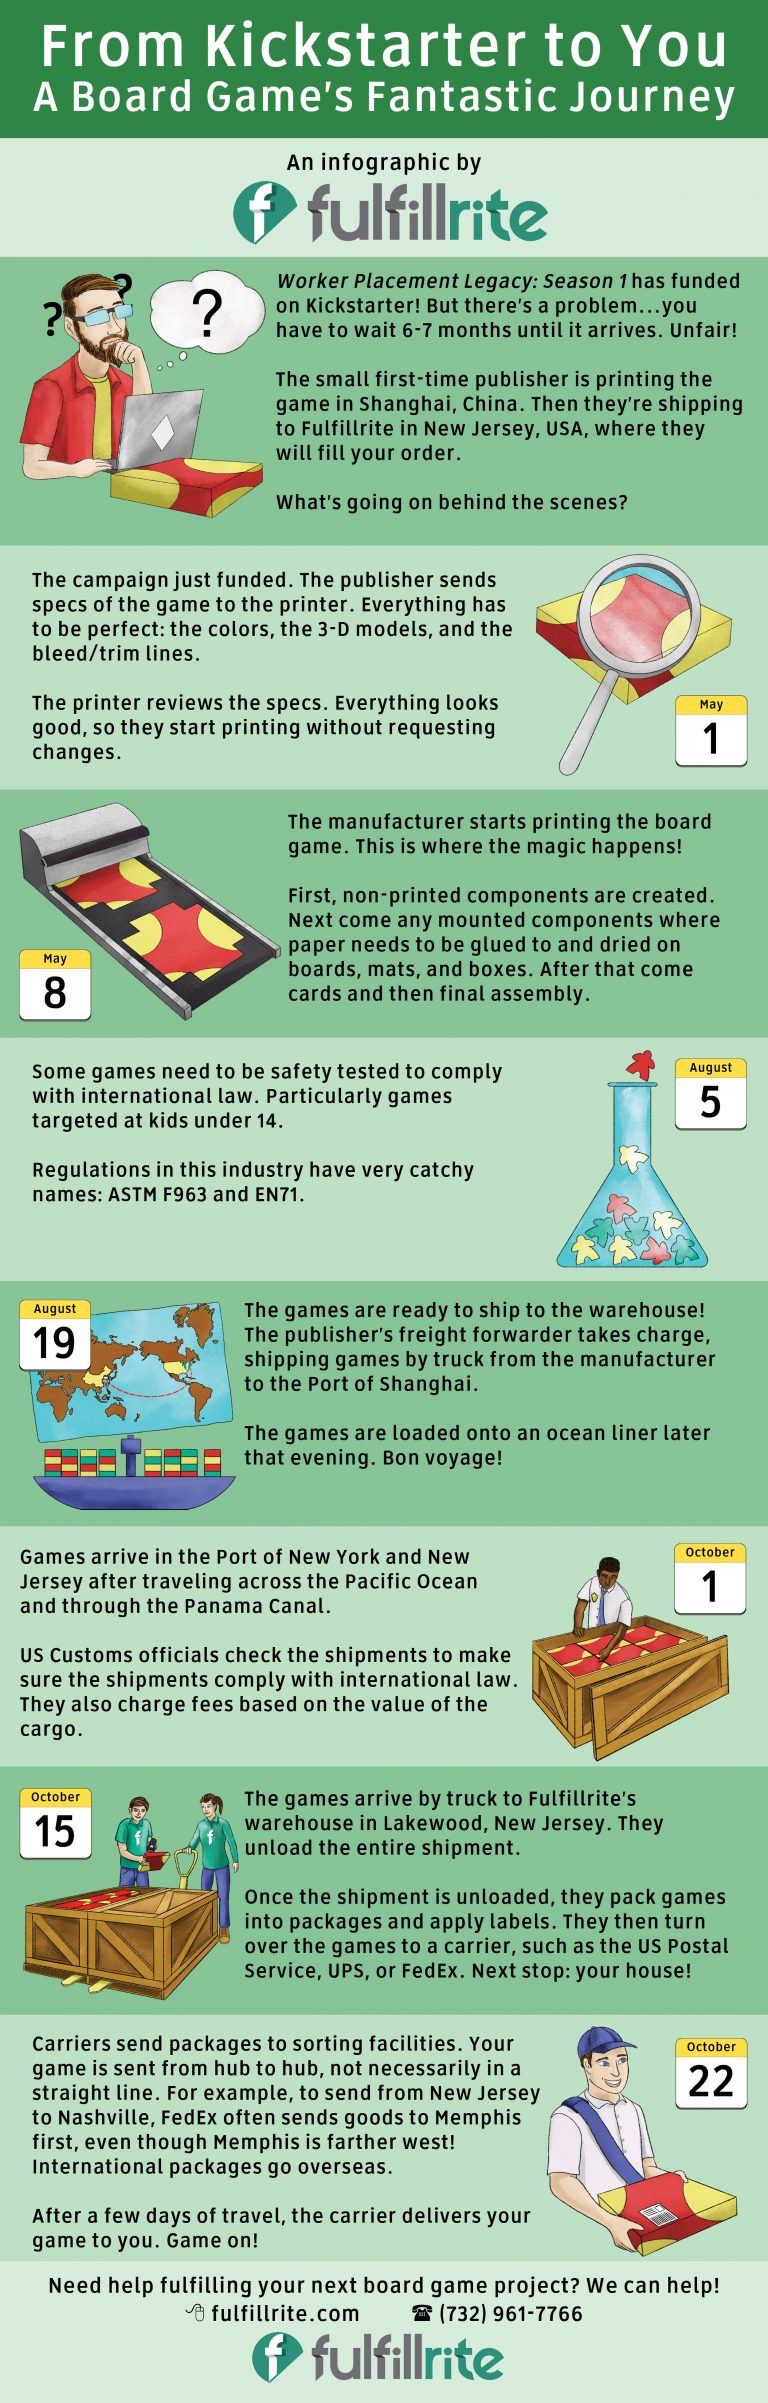 fulfillment-infographic-768x2403.jpg